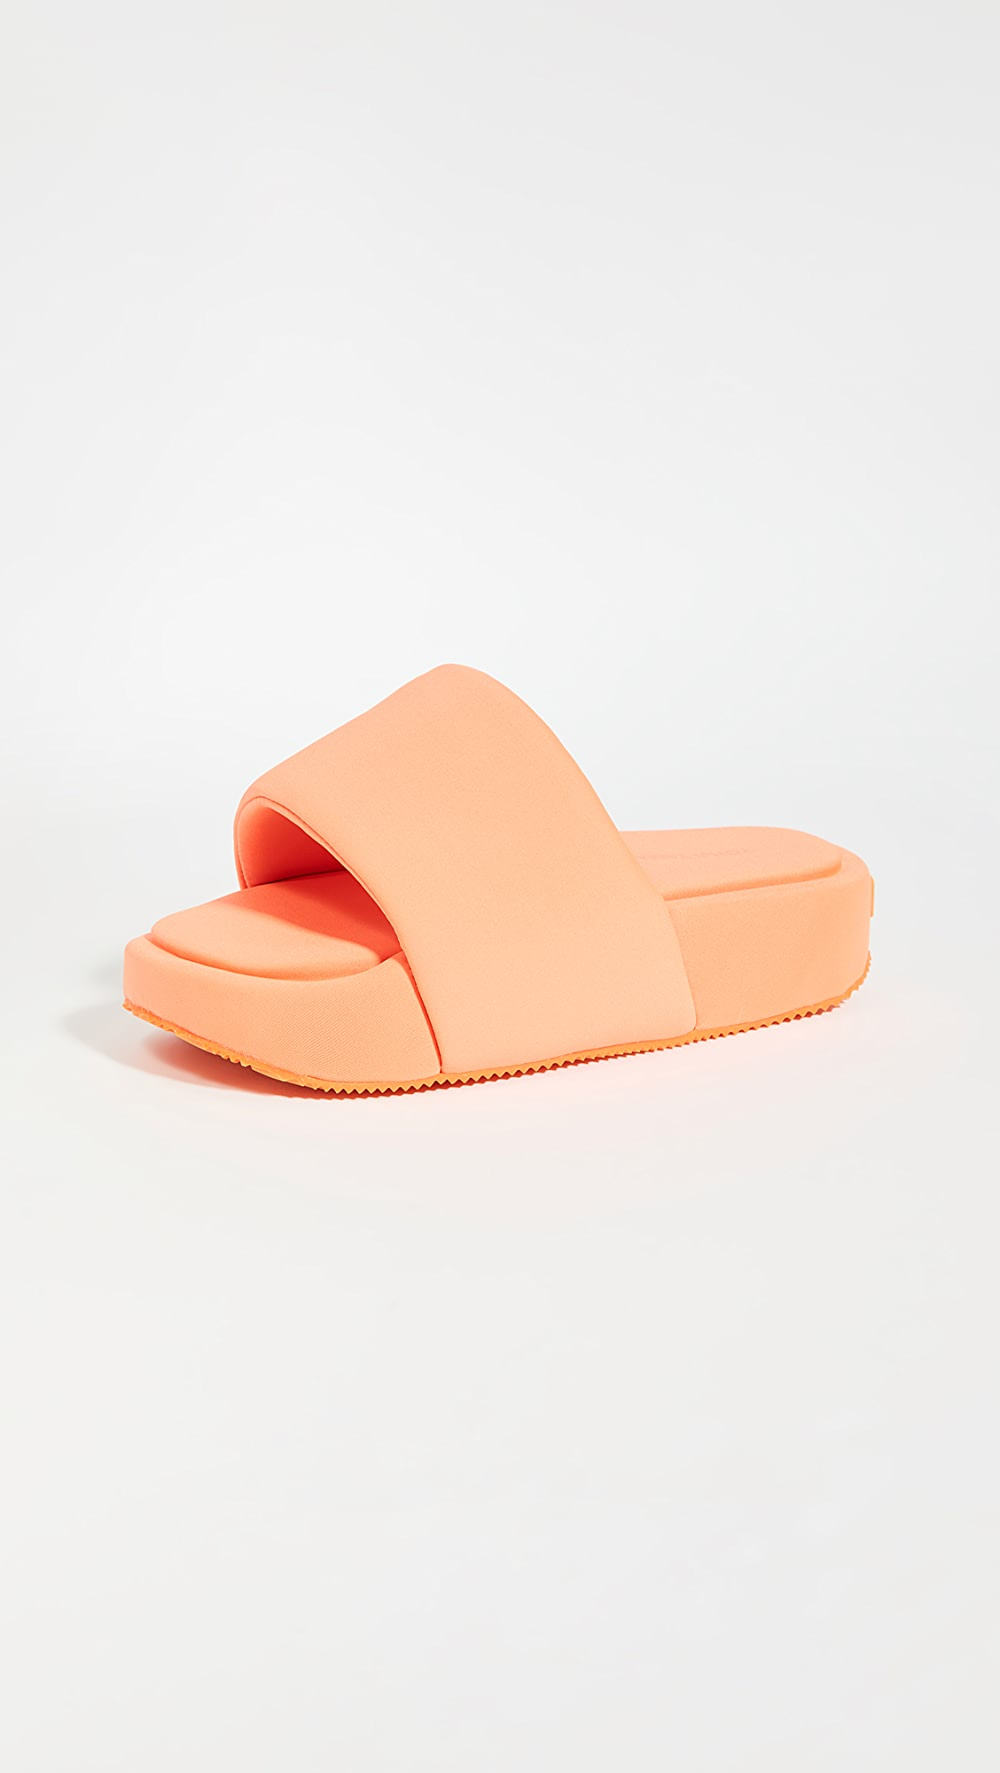 100% Quality Y-3 - Y-3 Slides Aromatic Flavor